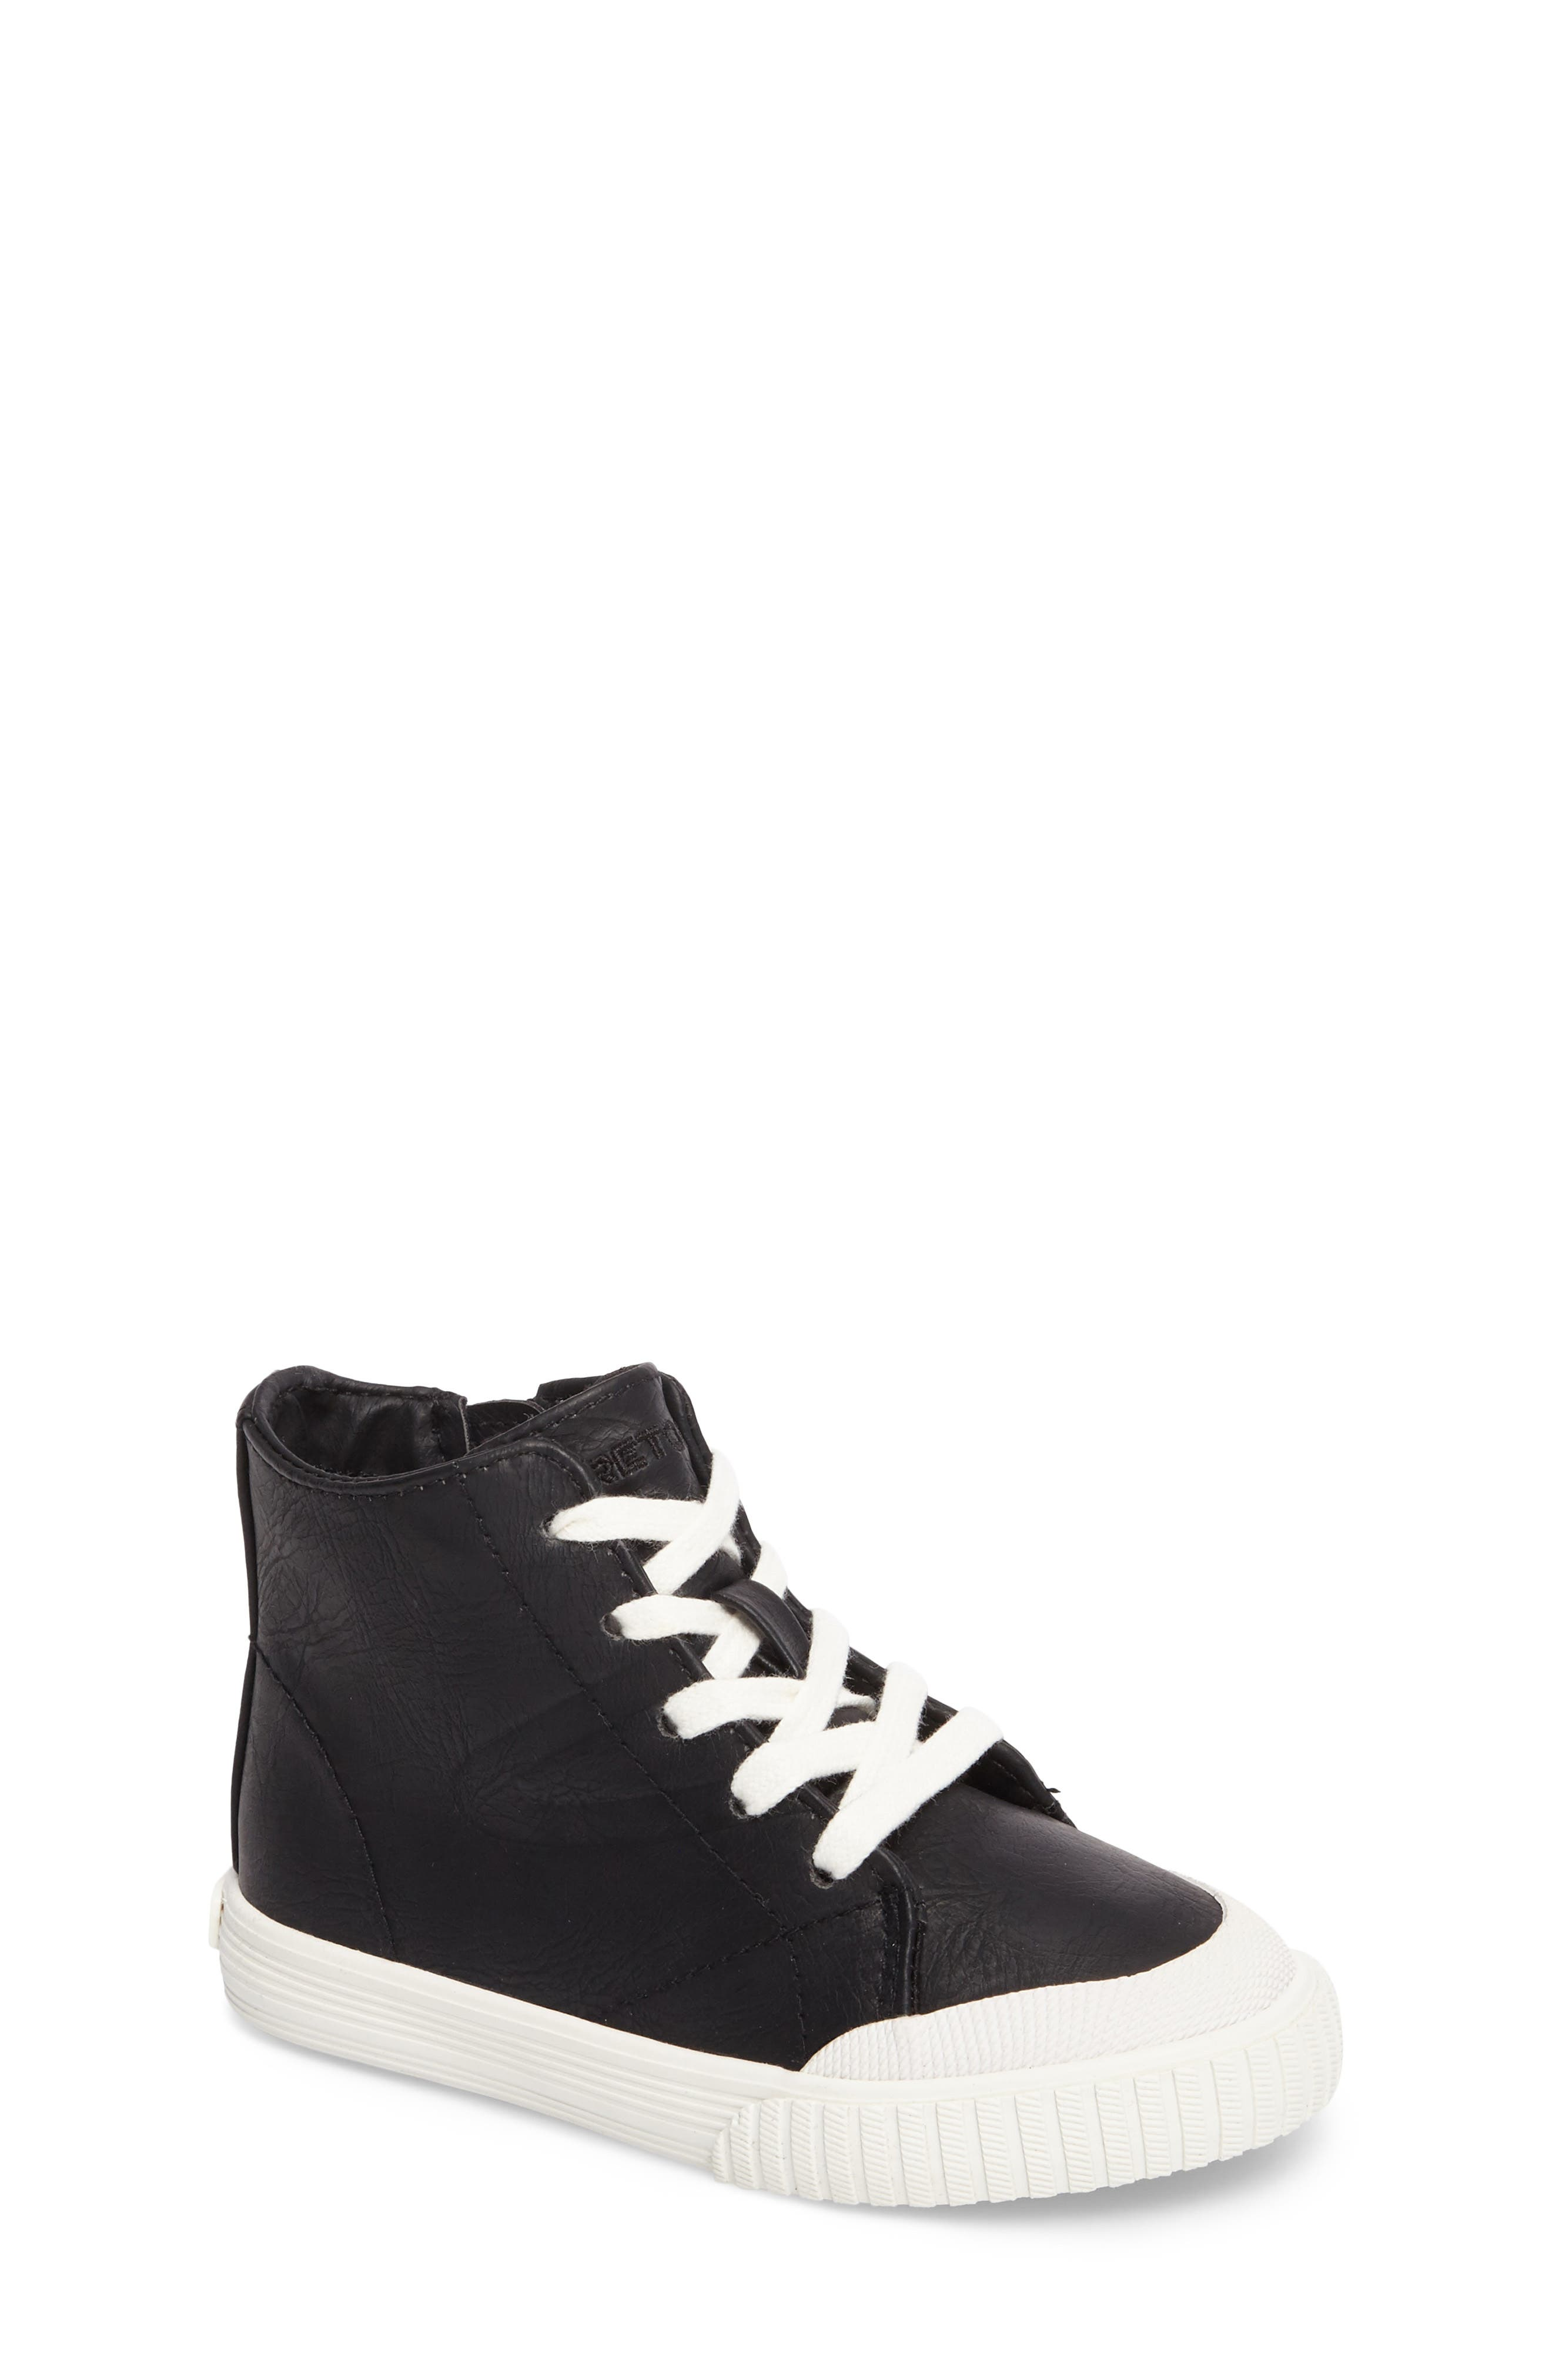 Marley High Top Sneaker,                         Main,                         color, 001